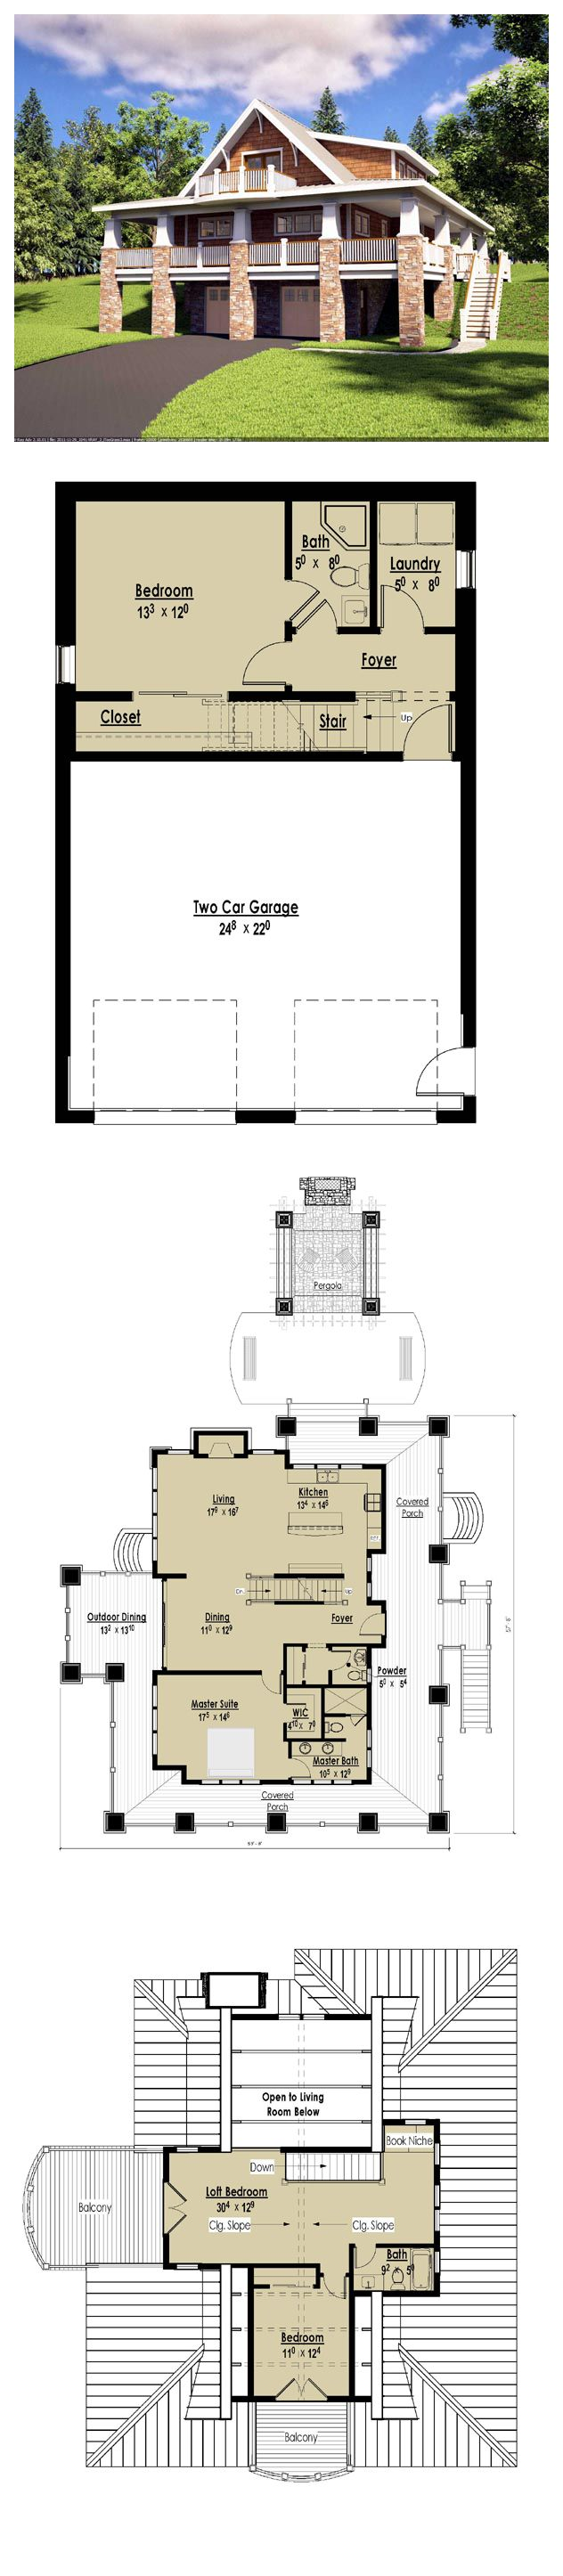 17 best bungalow house plans images on pinterest cool house cool house plans offers a unique variety of professionally designed home plans with floor plans by accredited home designers styles include country house